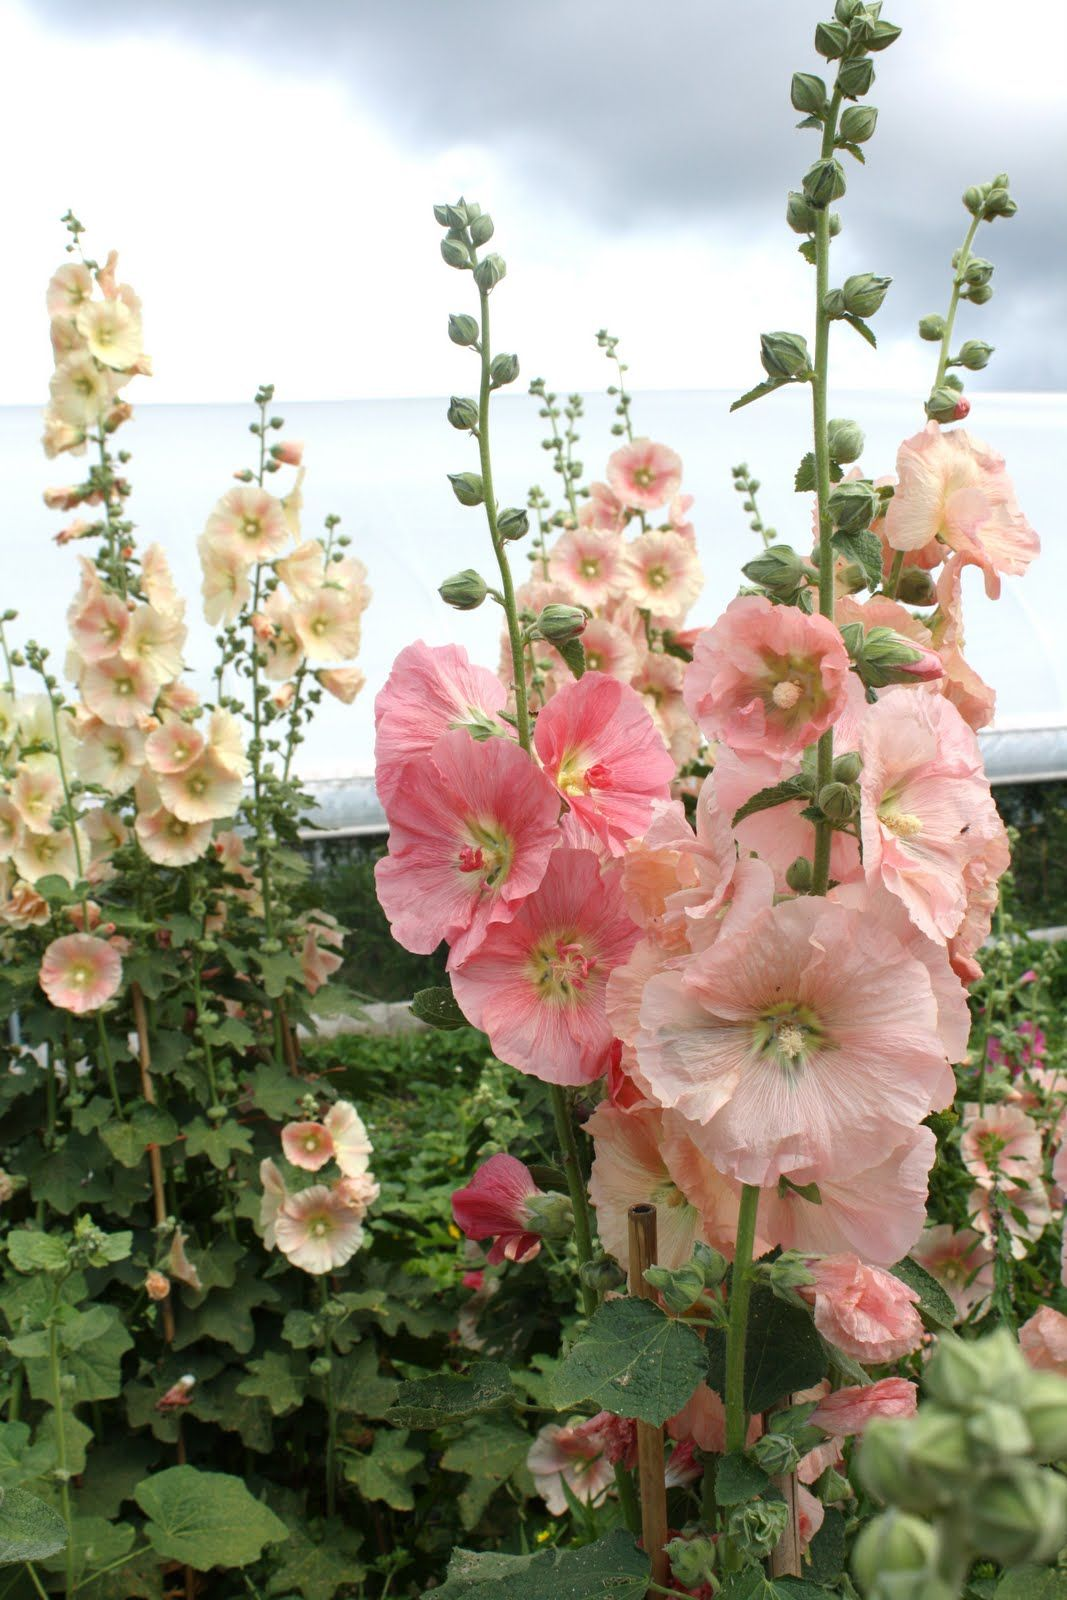 Hollyhocks - When we were kids we made dolls out of hollyhocks - the skirt was a flower turned upside down and the bud the head.